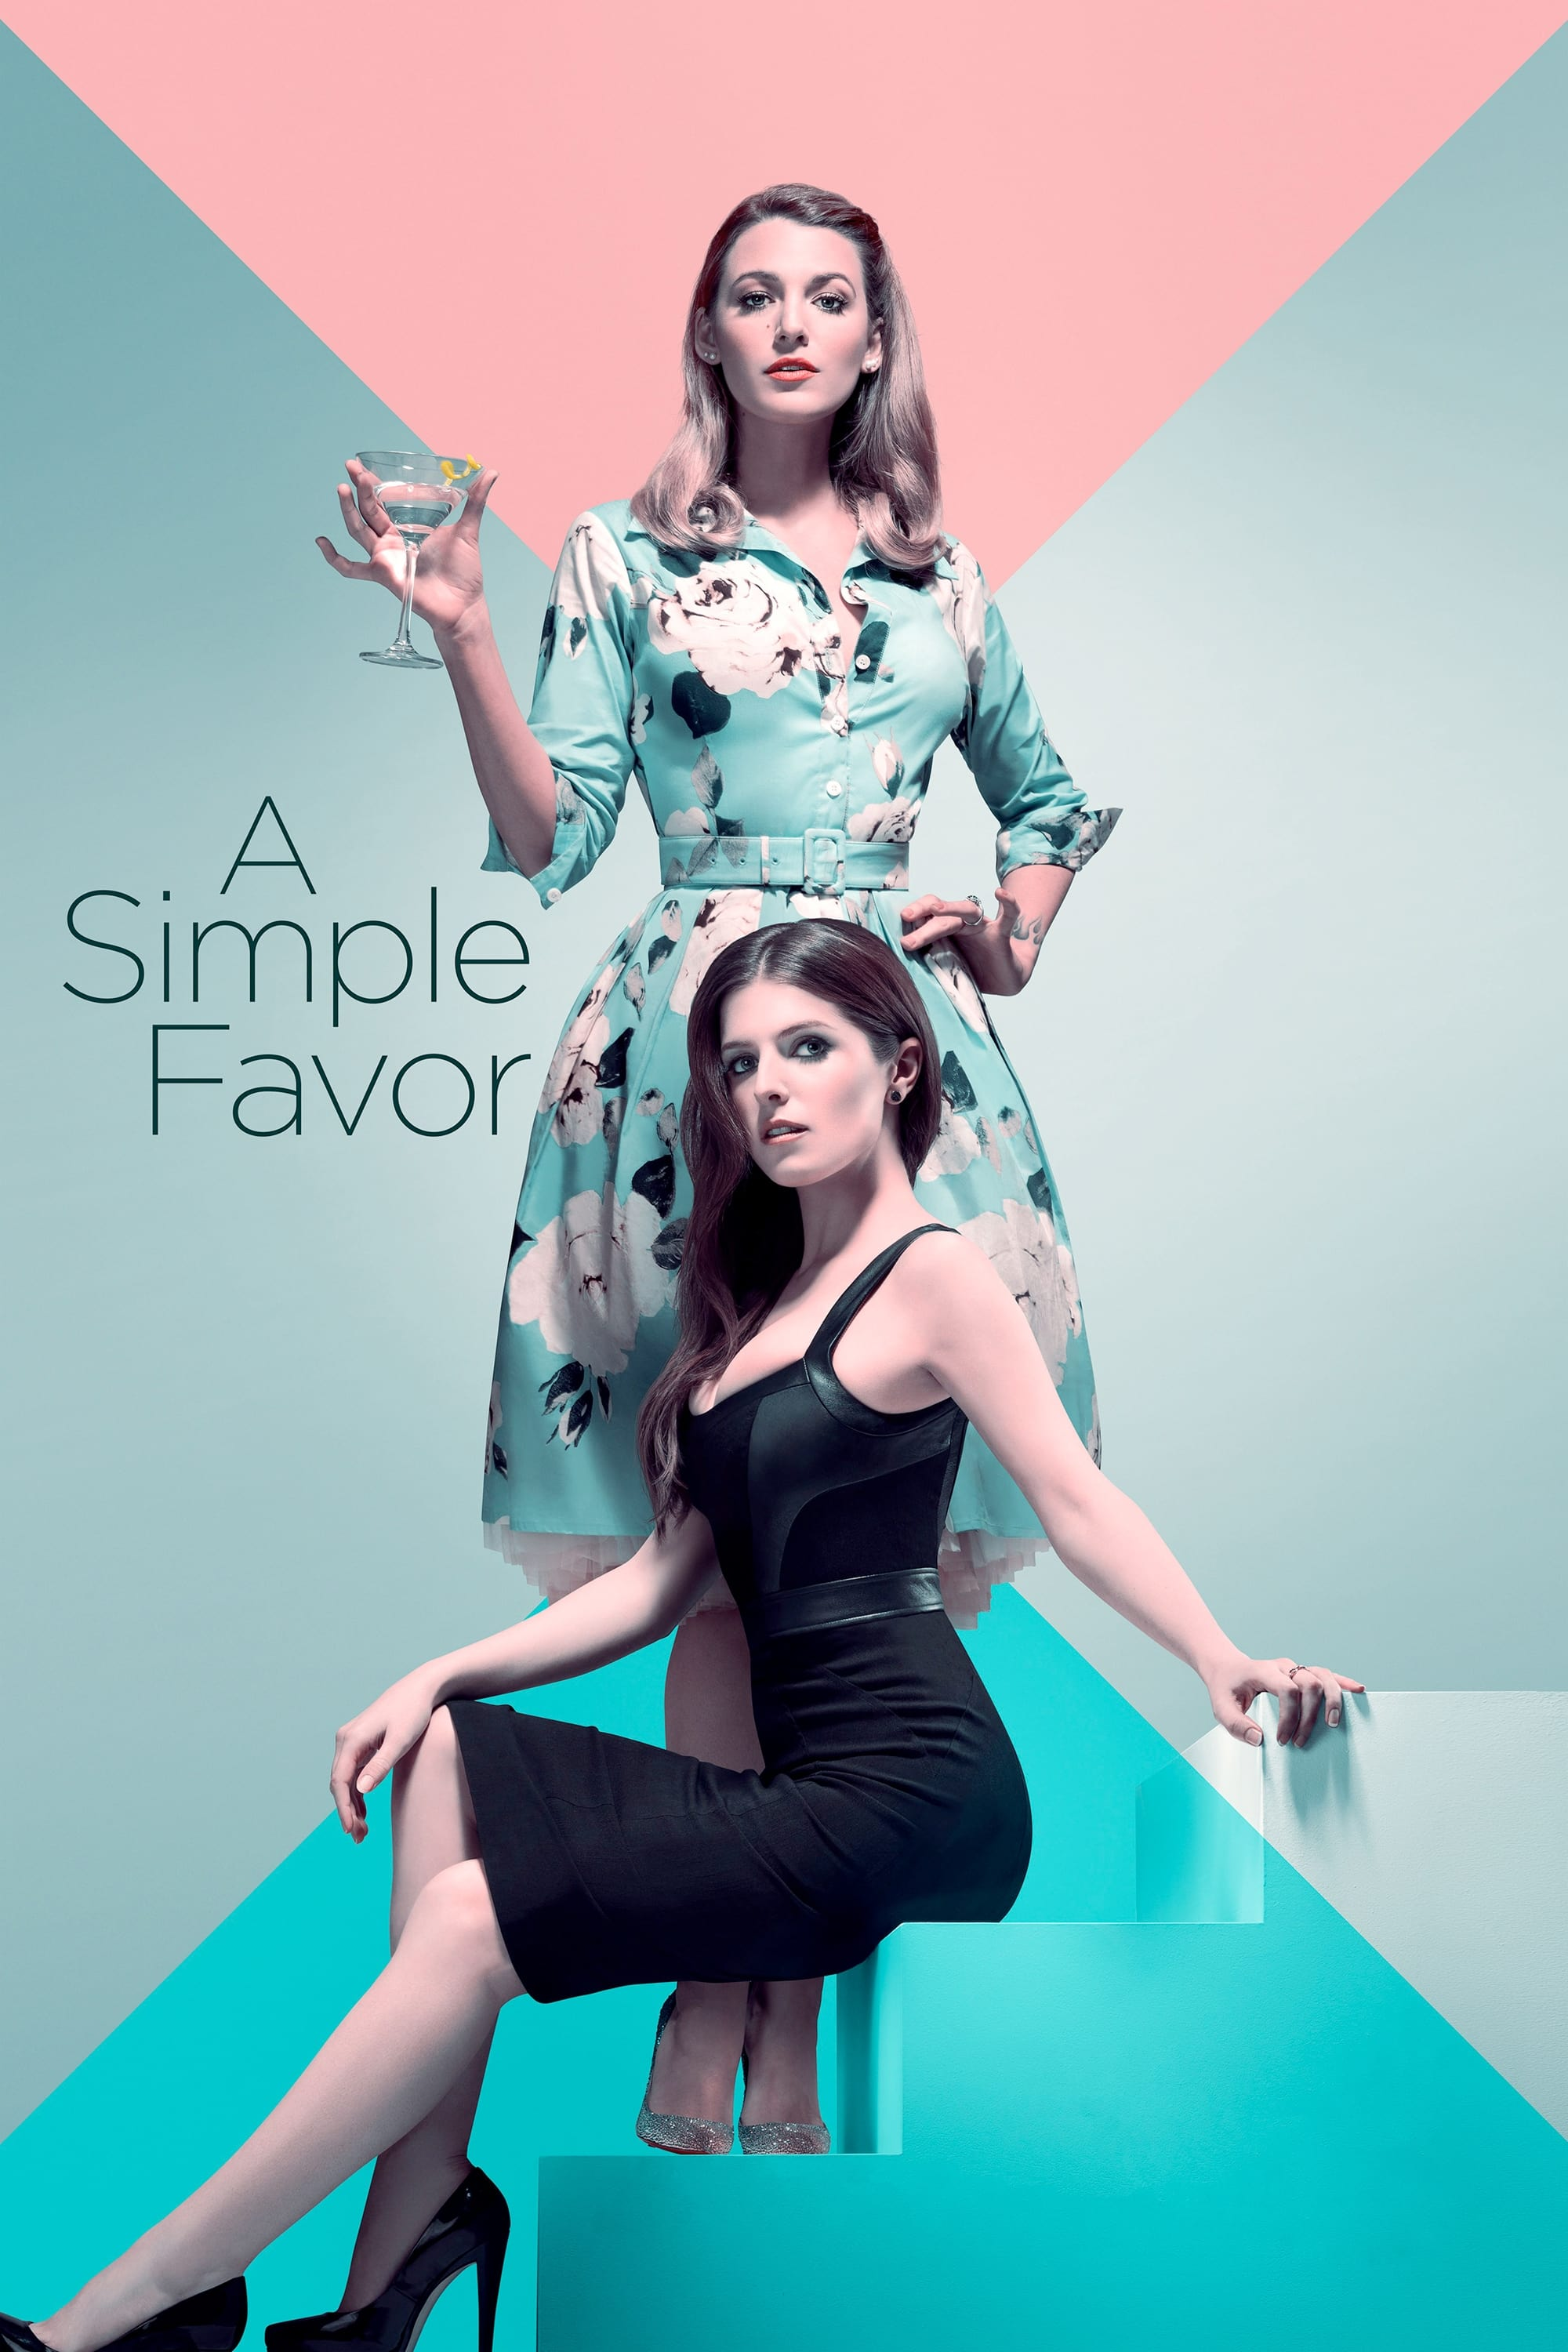 image for A Simple Favor